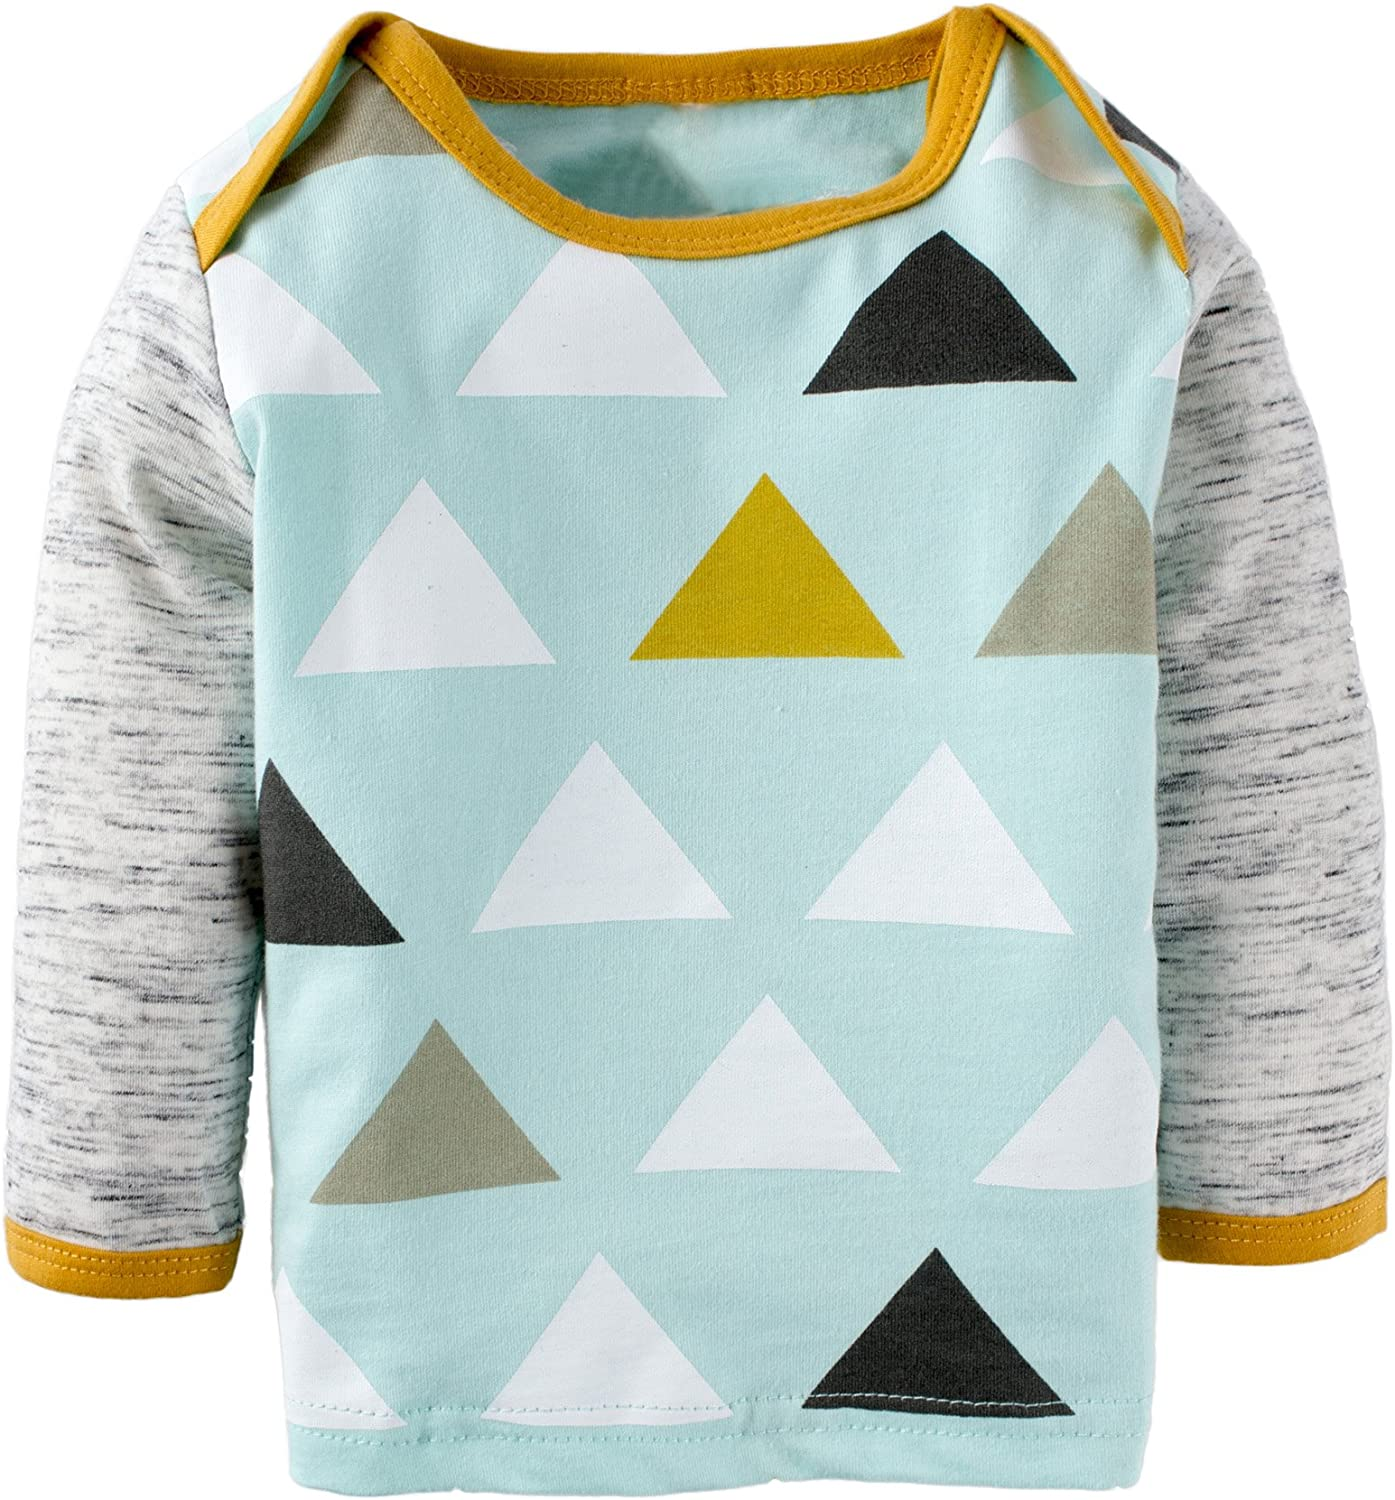 BIG ELEPHANT Baby Boys3 Pieces Long Sleeve Graphic Top Pants Set with Hat D L65-100 18-24 Months